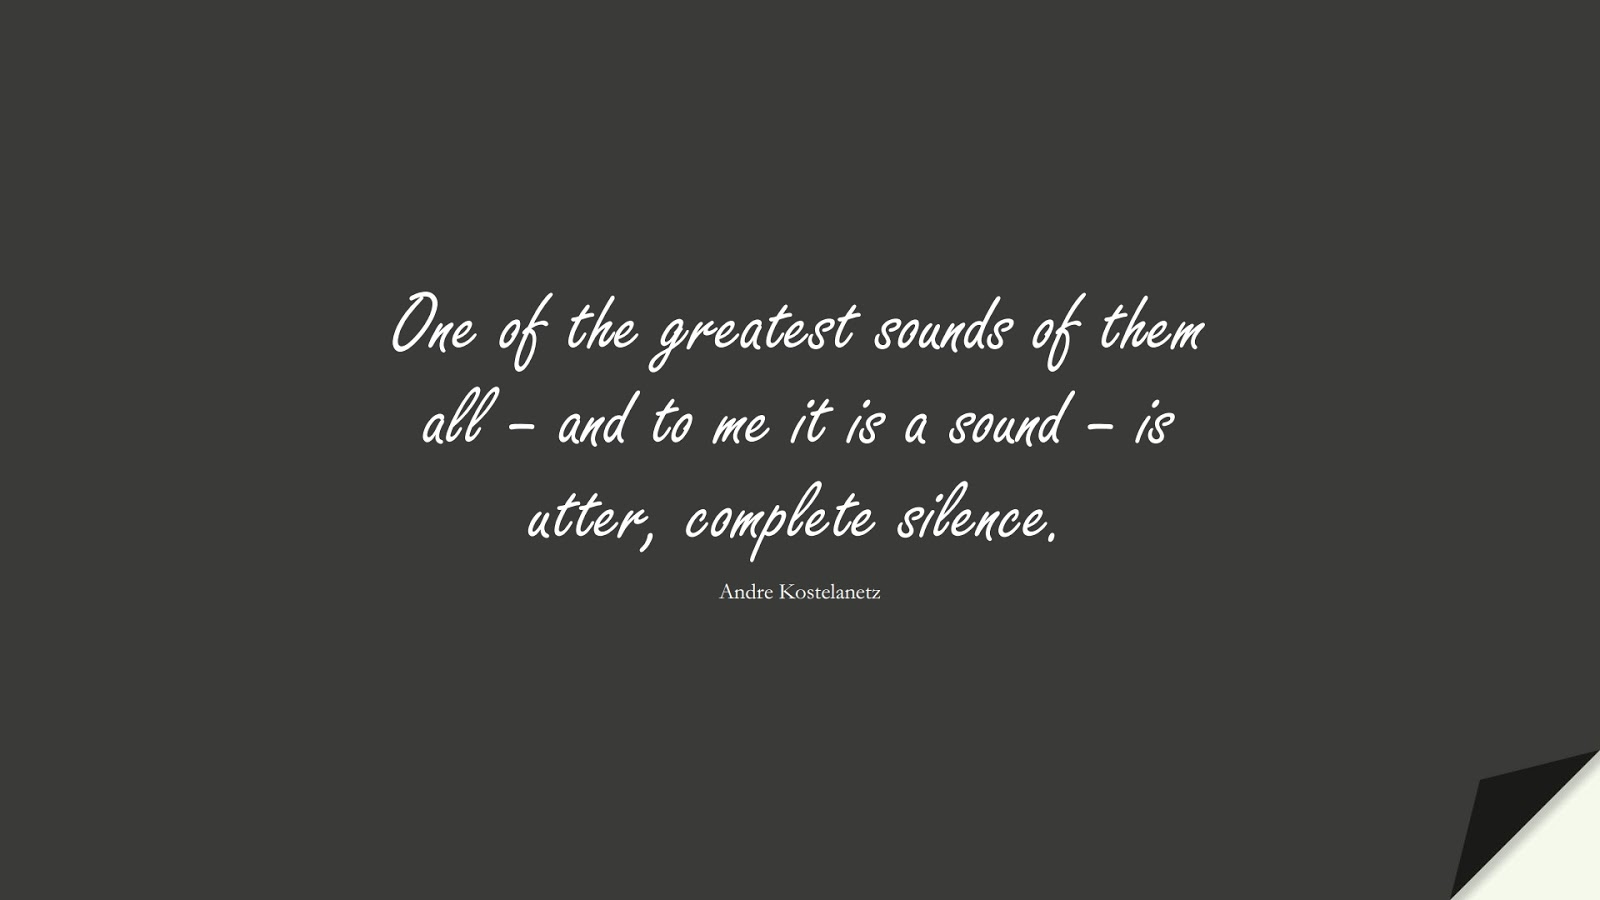 One of the greatest sounds of them all – and to me it is a sound – is utter, complete silence. (Andre Kostelanetz);  #CalmQuotes